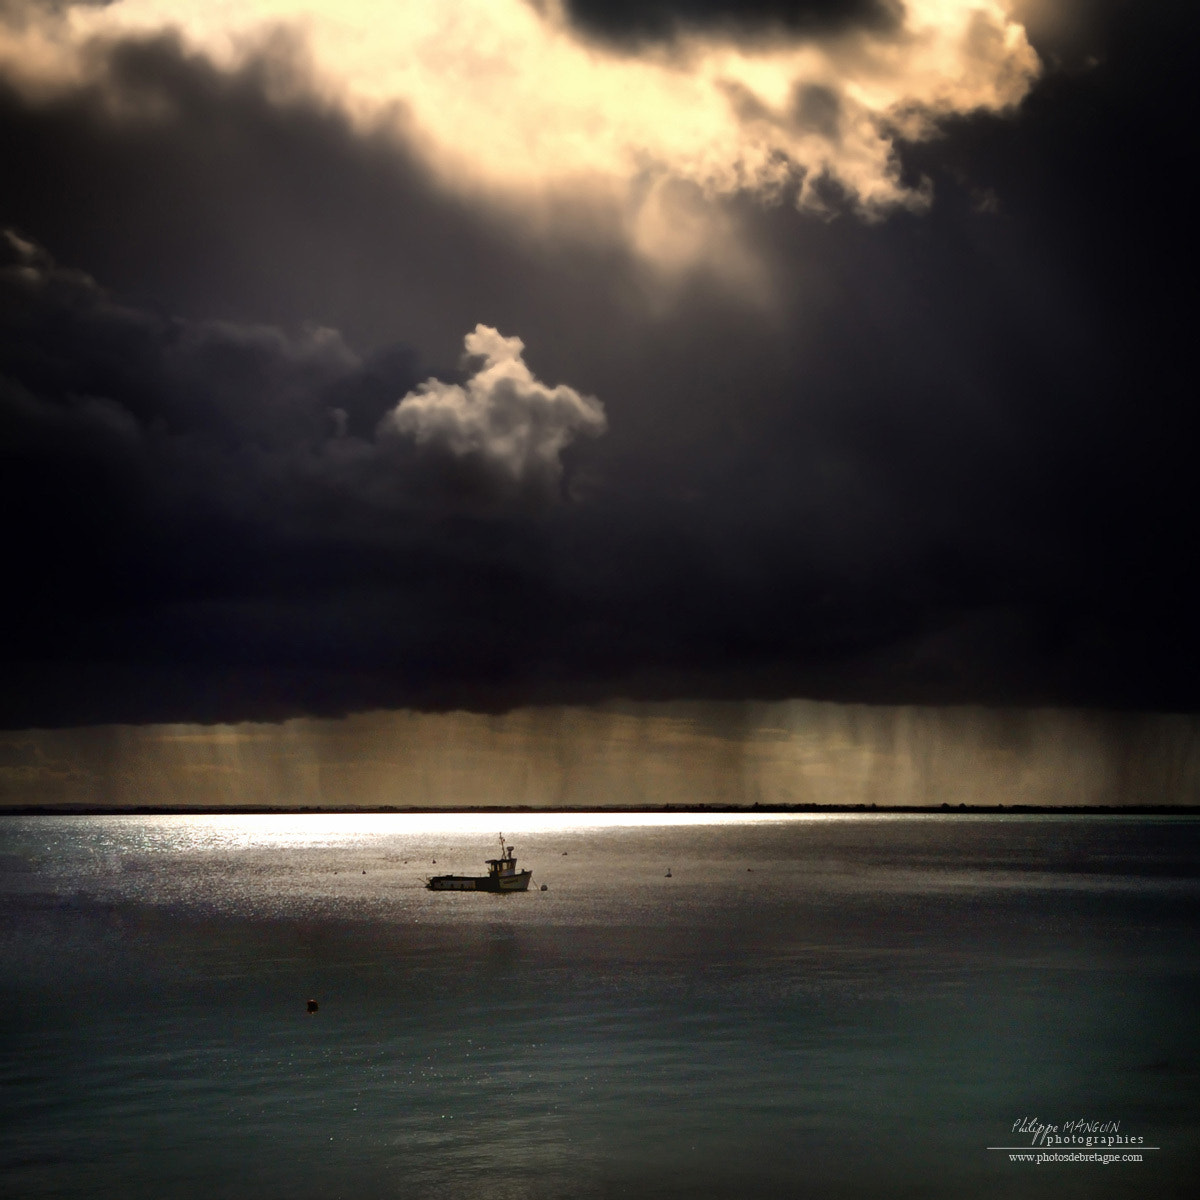 Photograph ALONE by Philippe MANGUIN on 500px